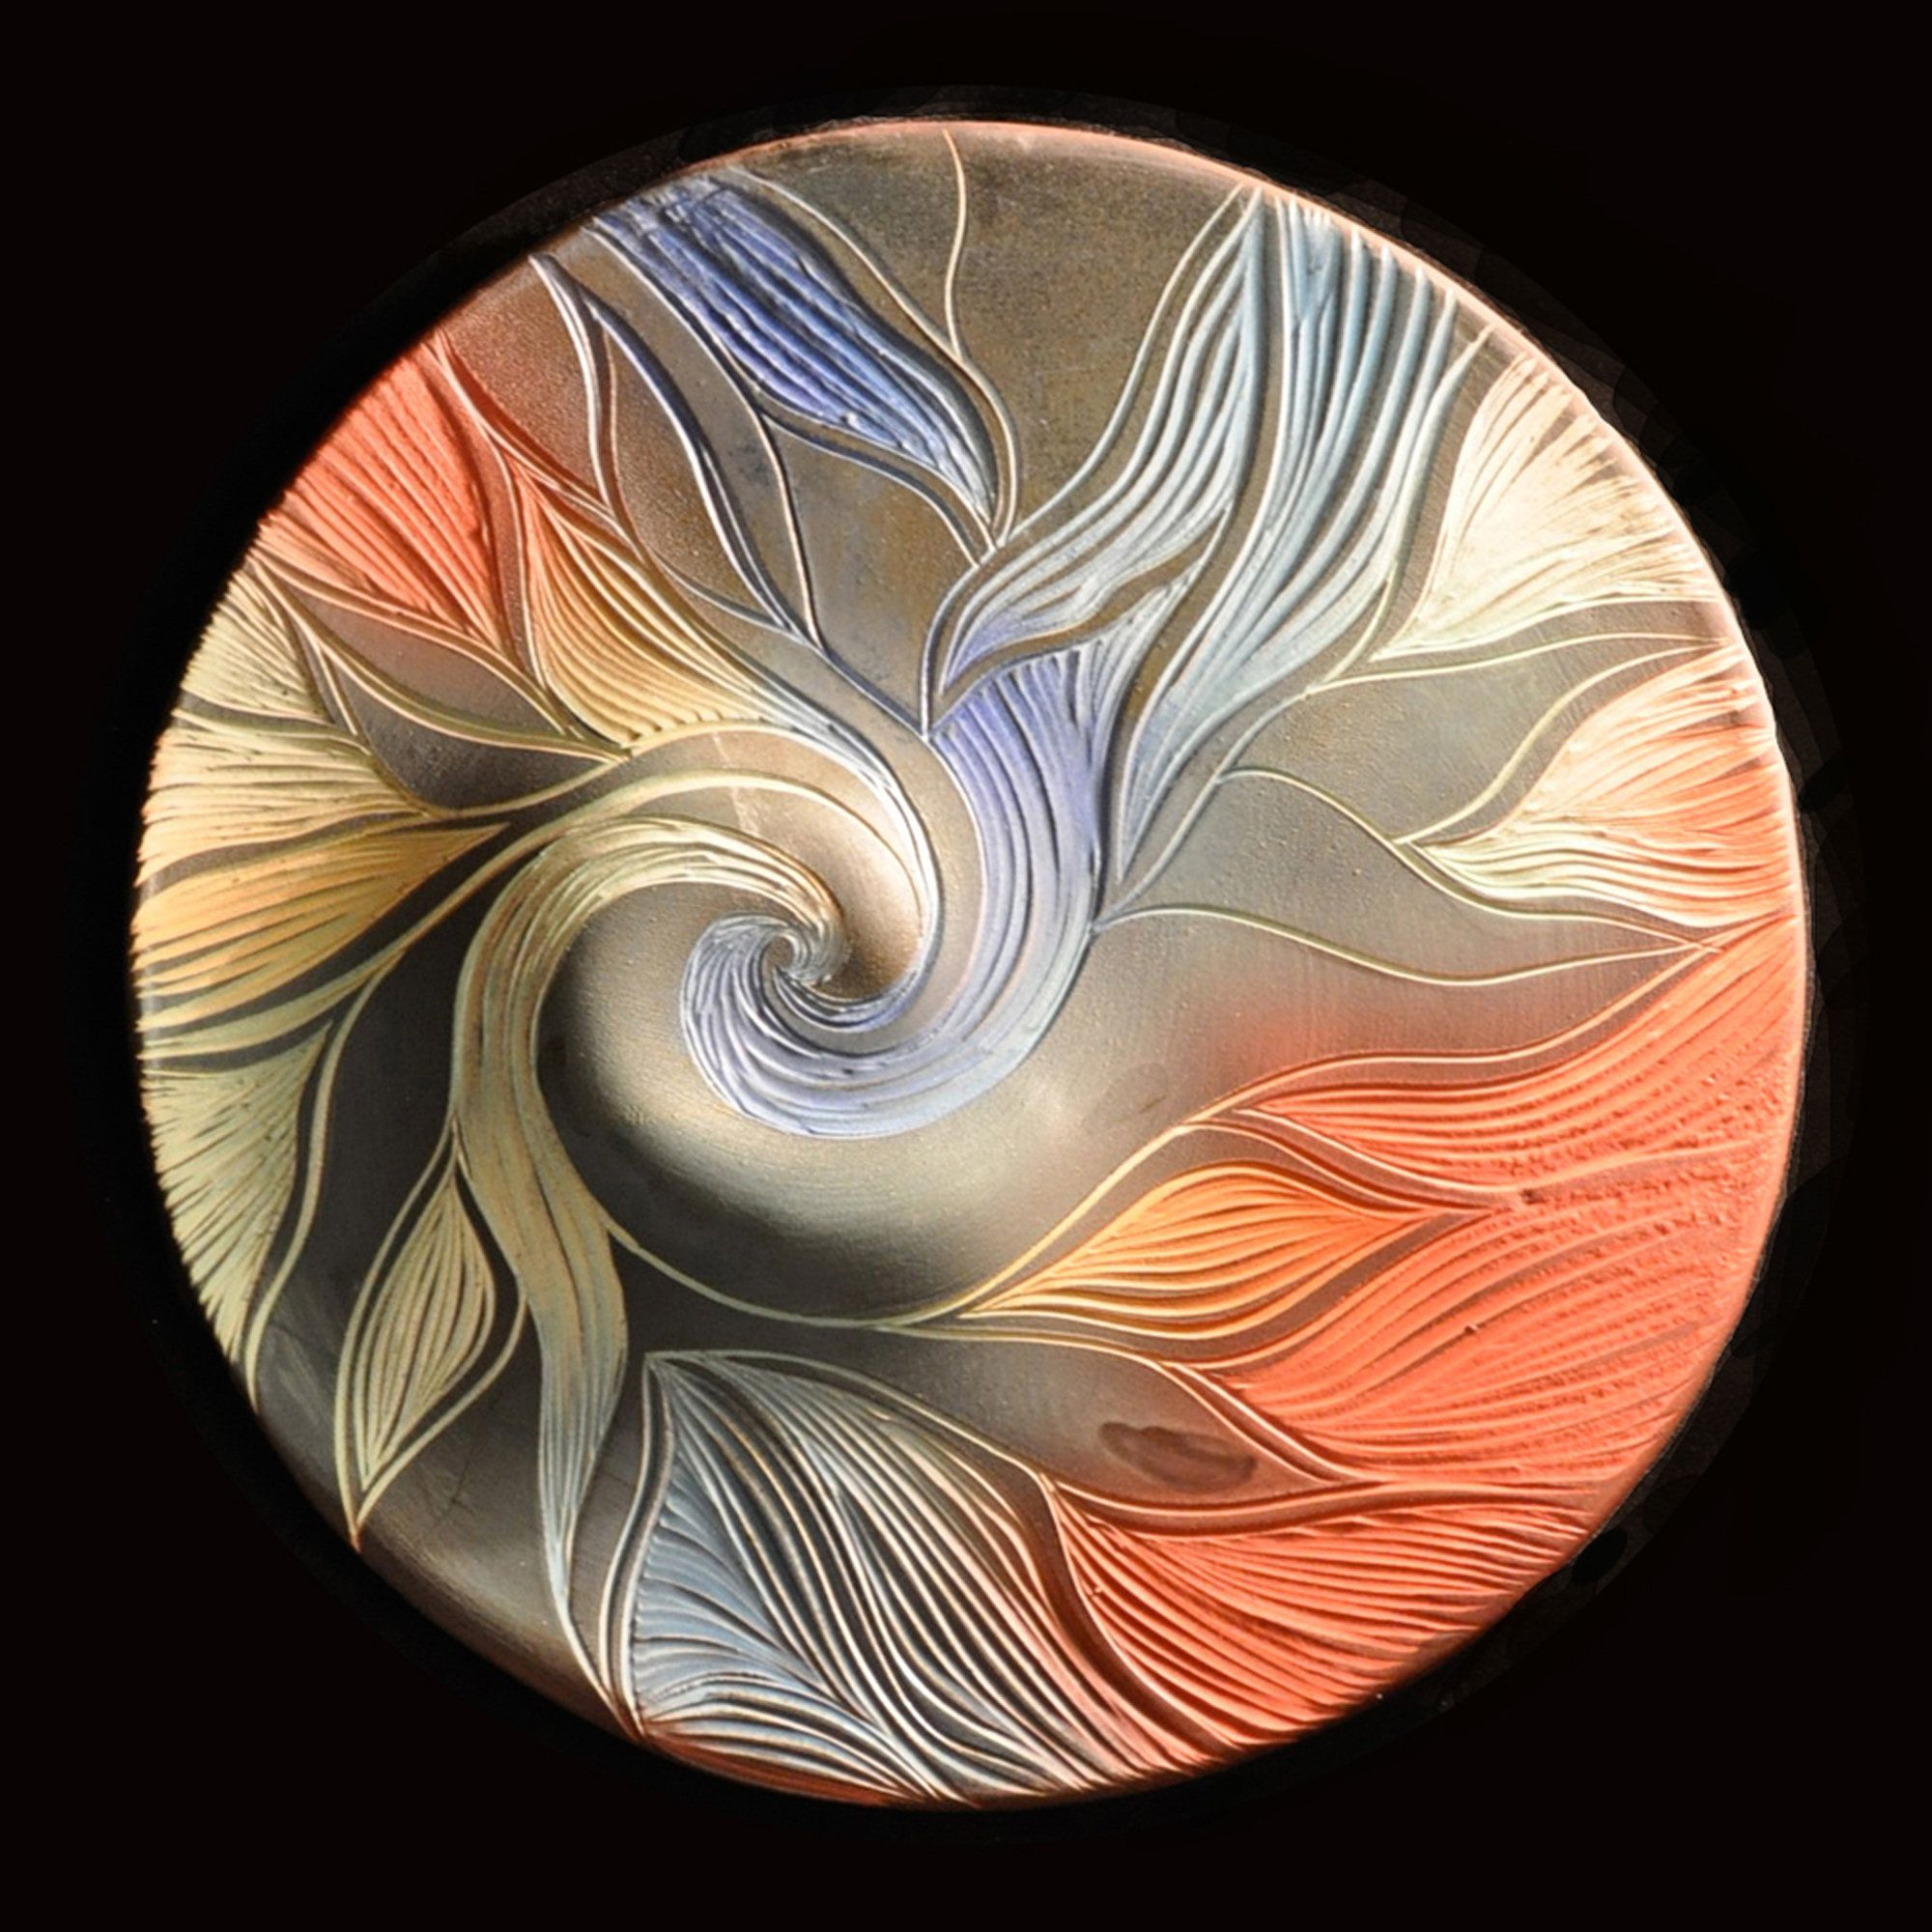 Artful Home Flowing Tendrils Wall Disc By Natalie Blake Ceramic Wall Art